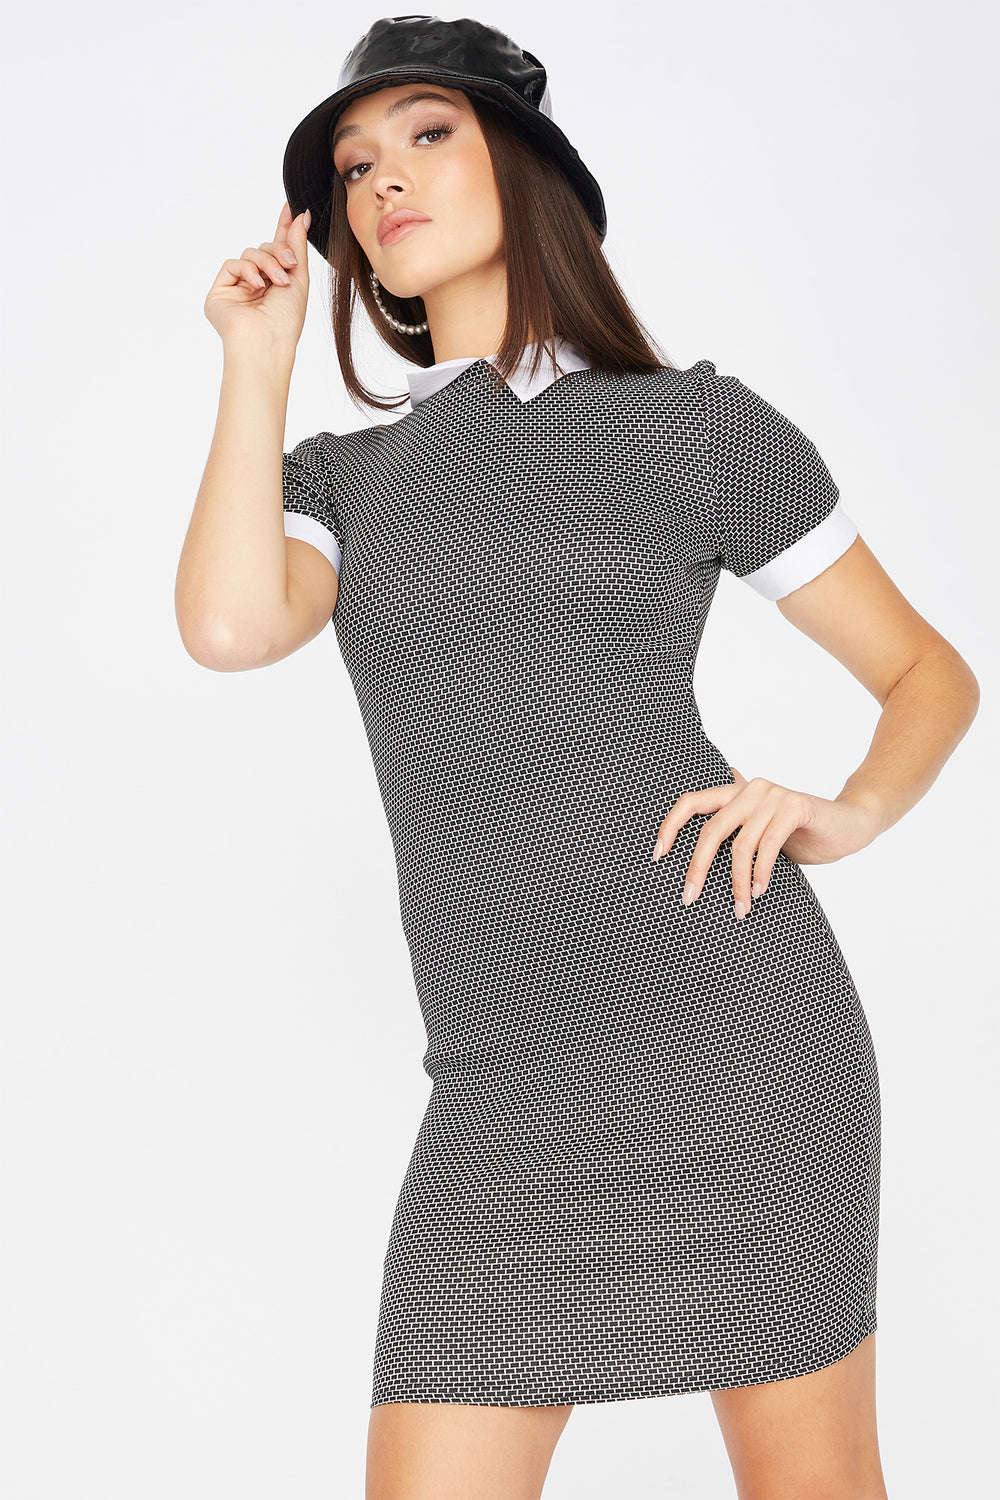 Contrast Collared Printed Short Sleeve Mini Dress Buffalo Check